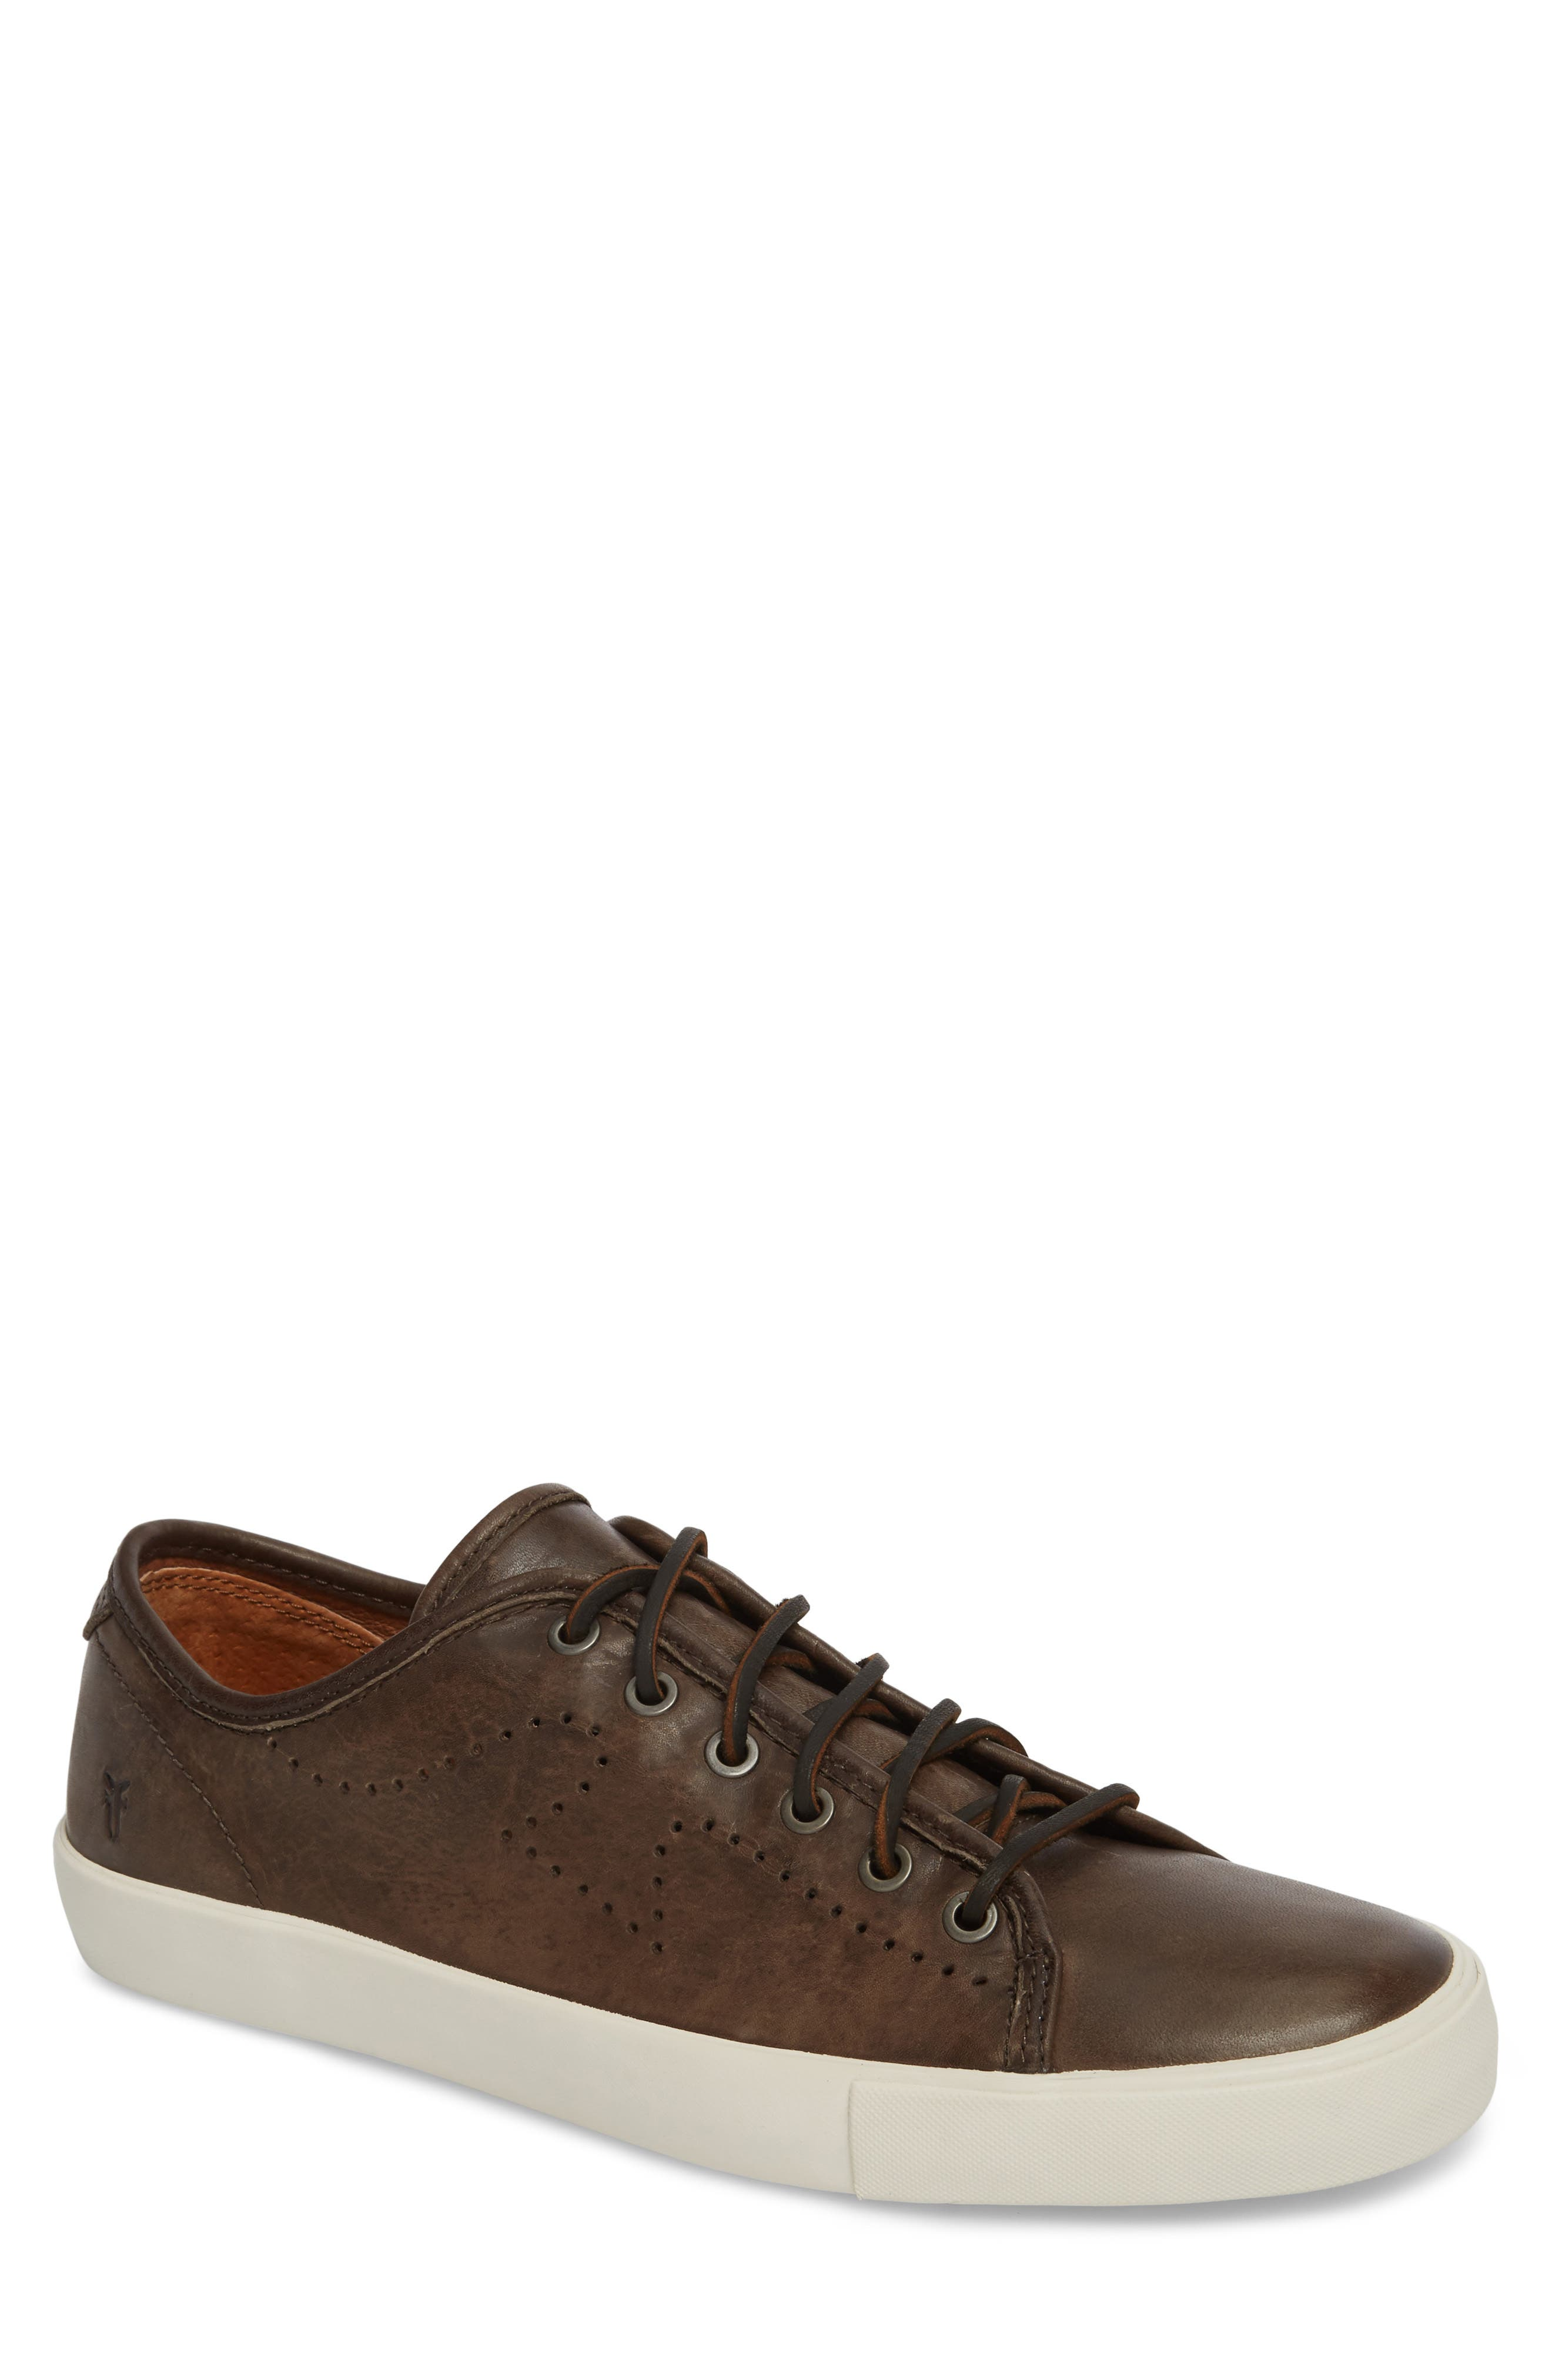 Brett Perforated Logo Low Top Sneaker,                         Main,                         color, 020